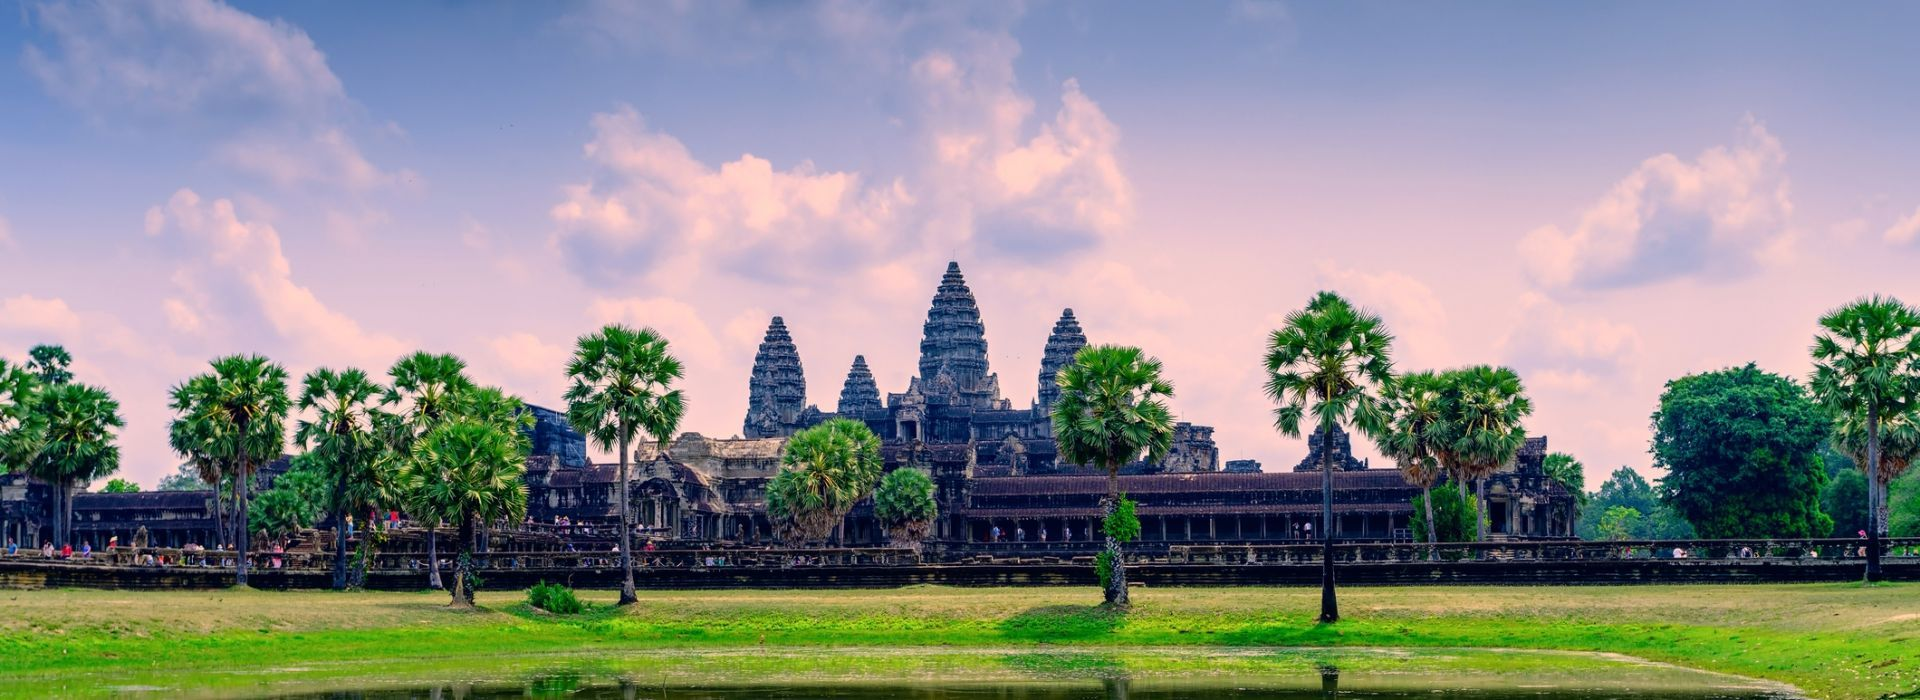 Sightseeing, attractions, culture and history Tours in Phnom Penh